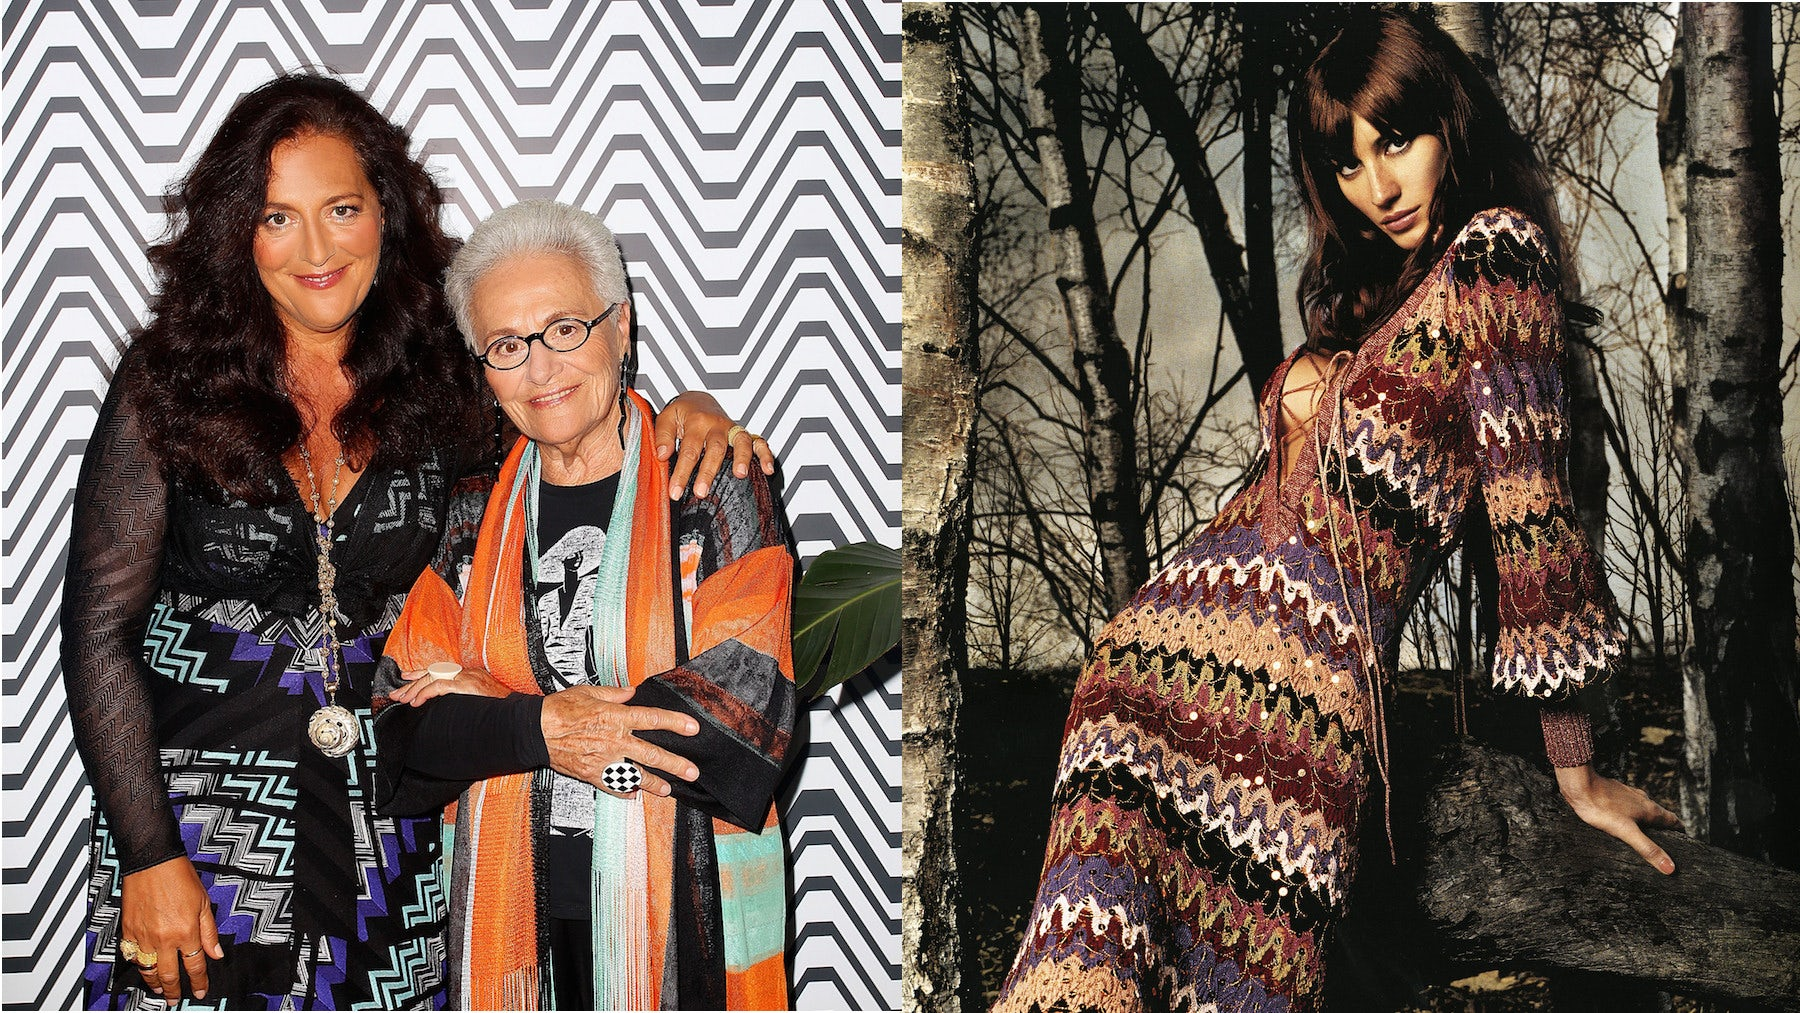 Angela and Rosita Missoni at a 'Missoni for Target' event in 2014, Missoni Autumn/Winter 2002 campaign | Source: Getty/Courtesy